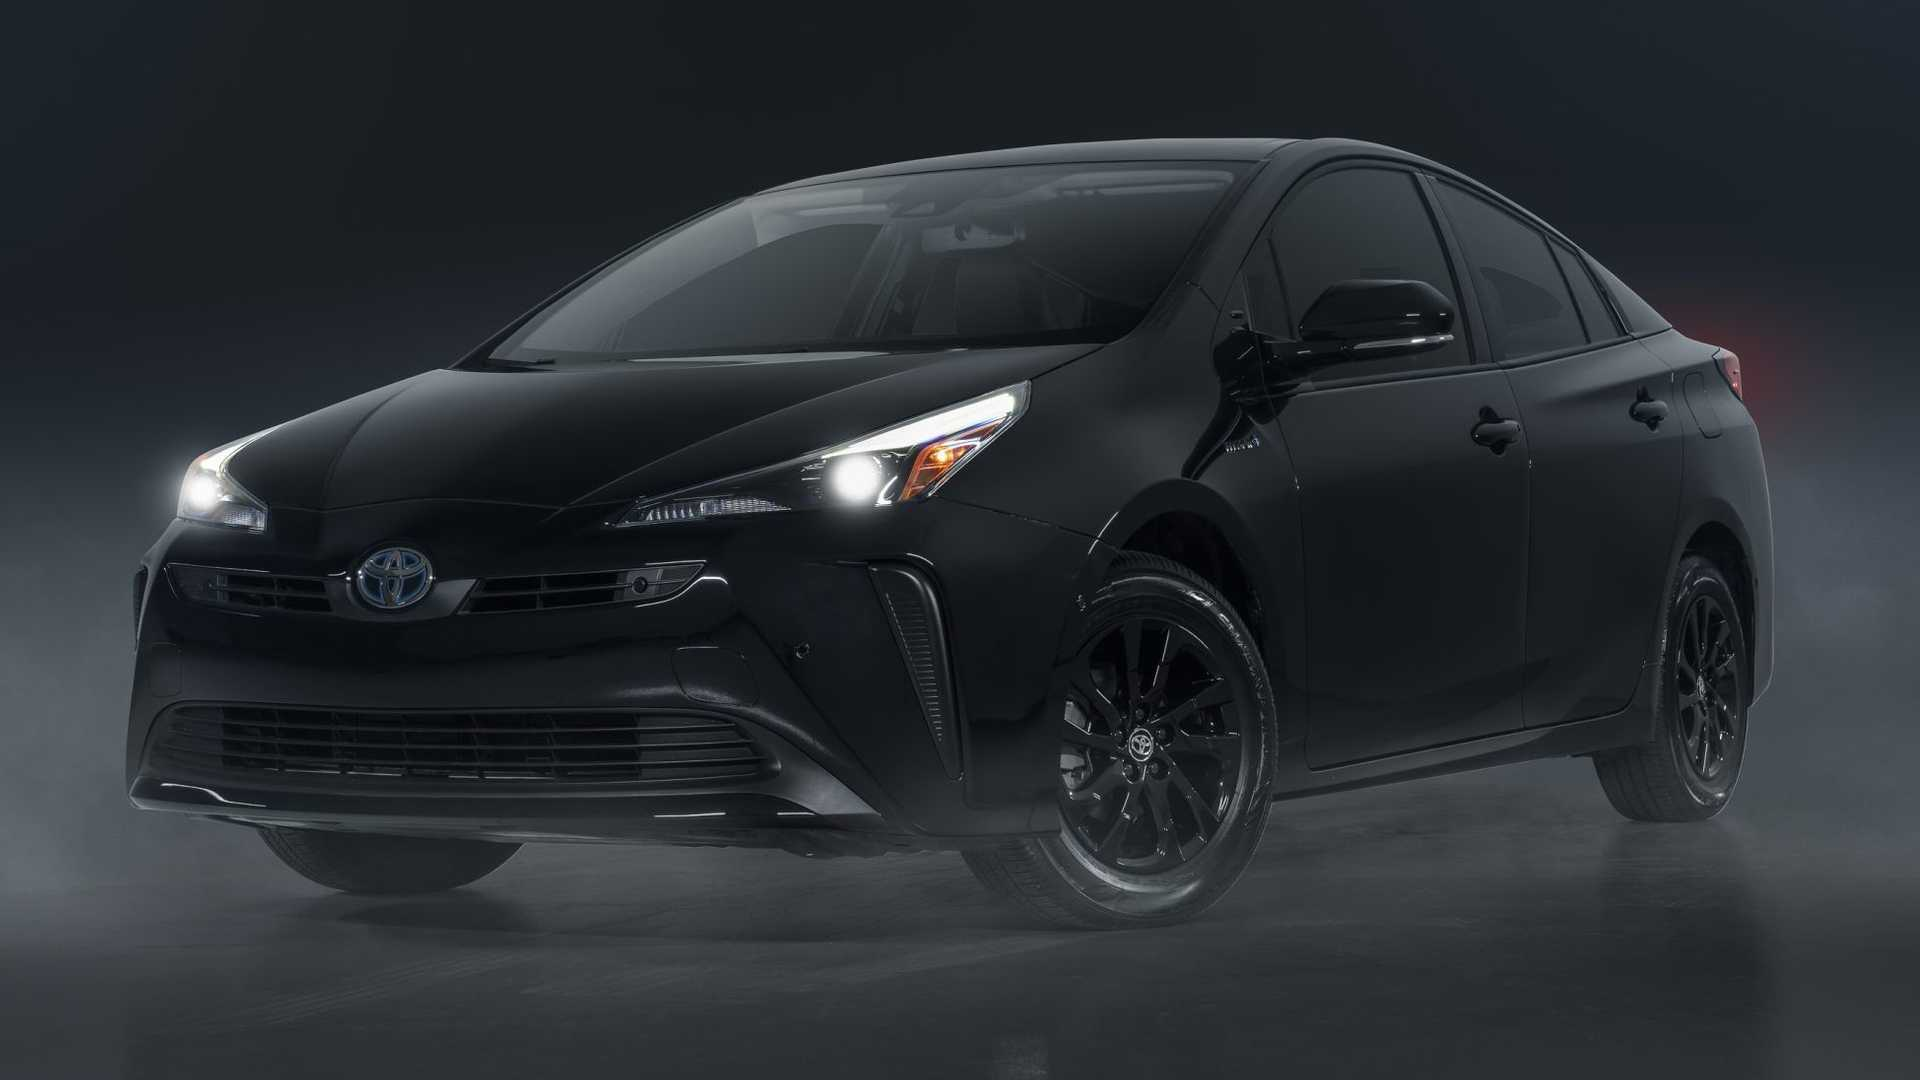 https://cdn.motor1.com/images/mgl/VAlxG/s6/2022-toyota-prius-nightshade-special-edition-front-angle.jpg